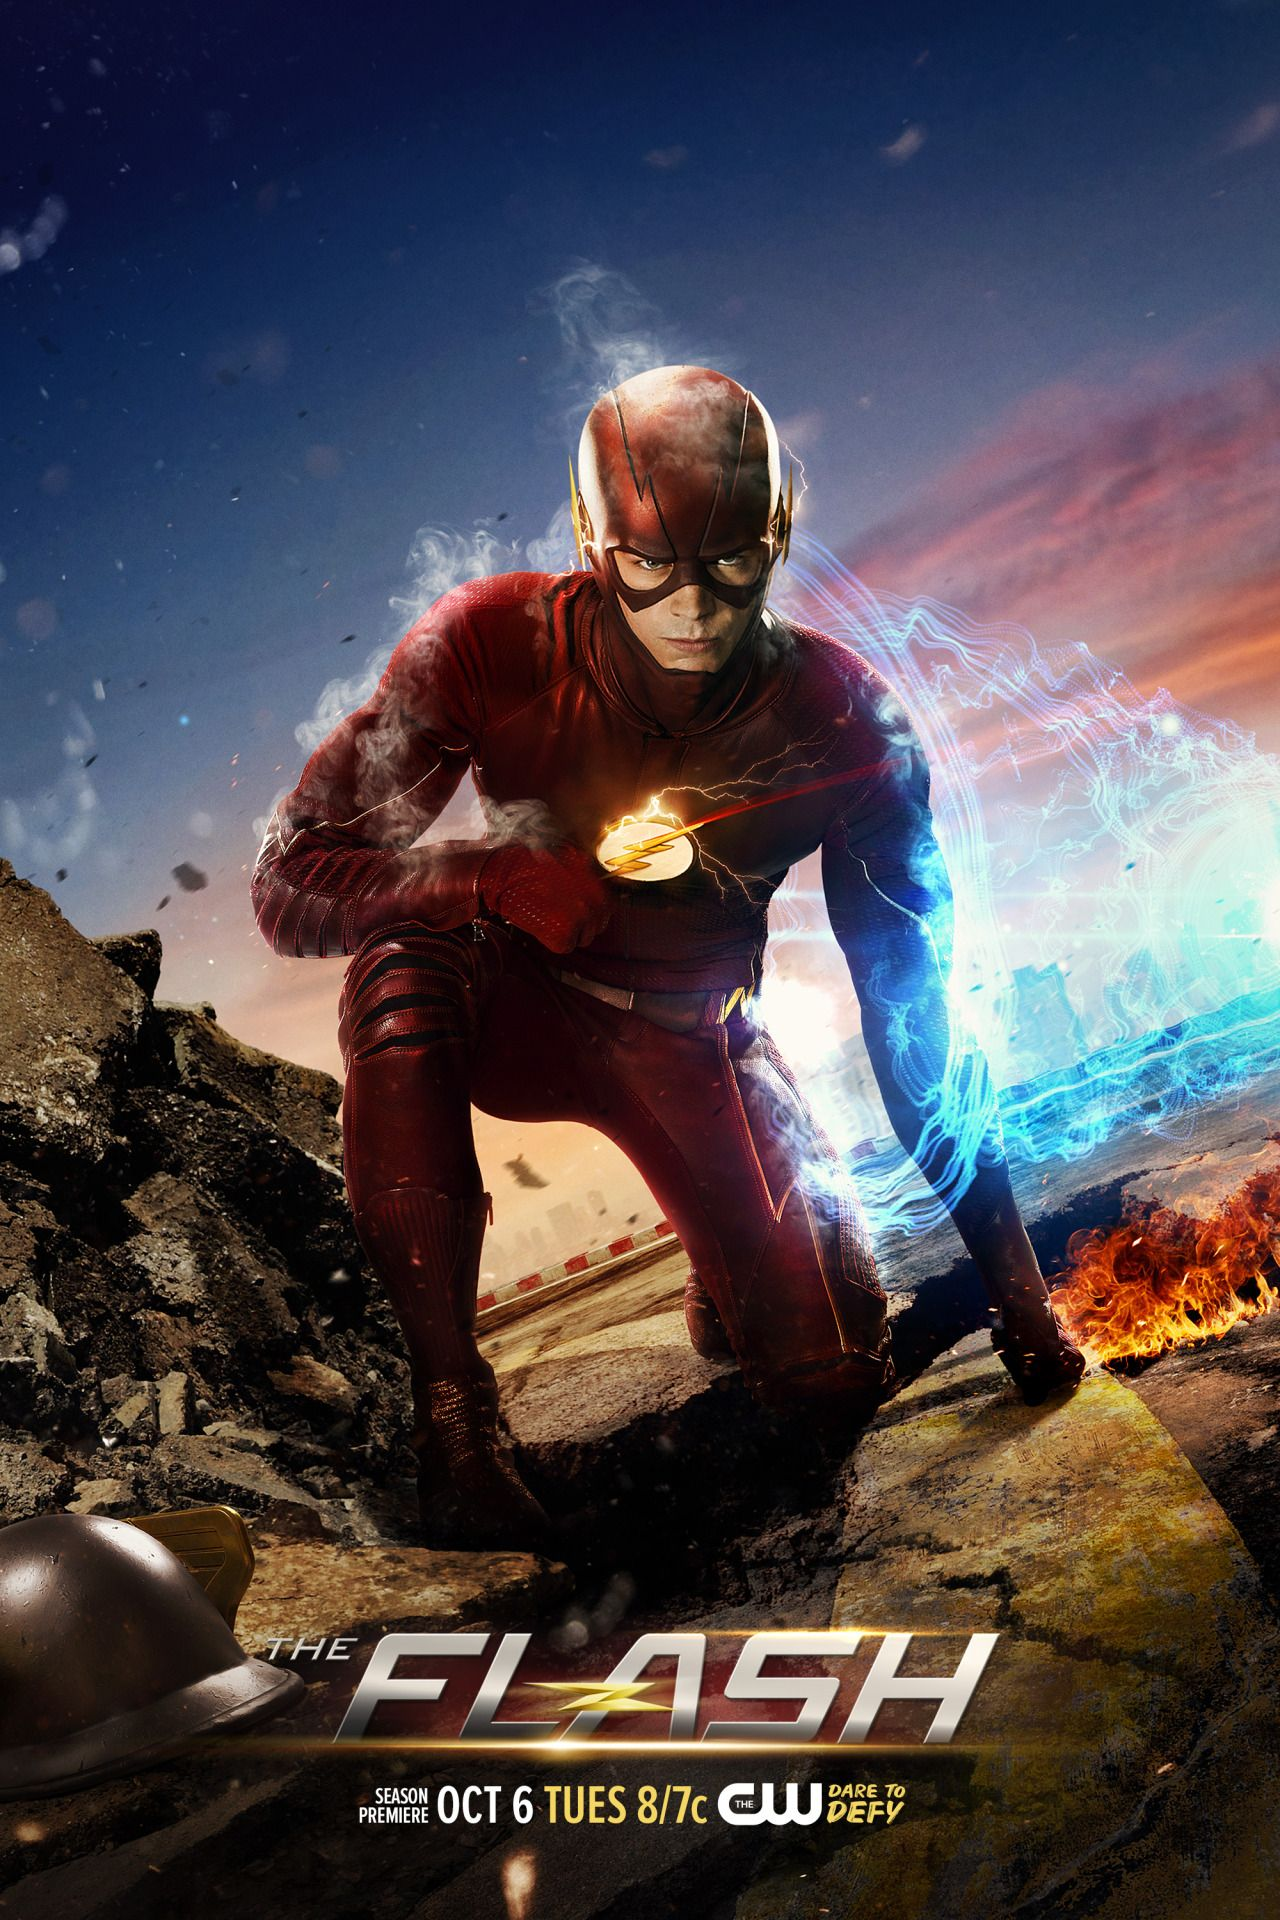 Manof2moro The Flash Season 2 The Flash Season Flash Tv Series